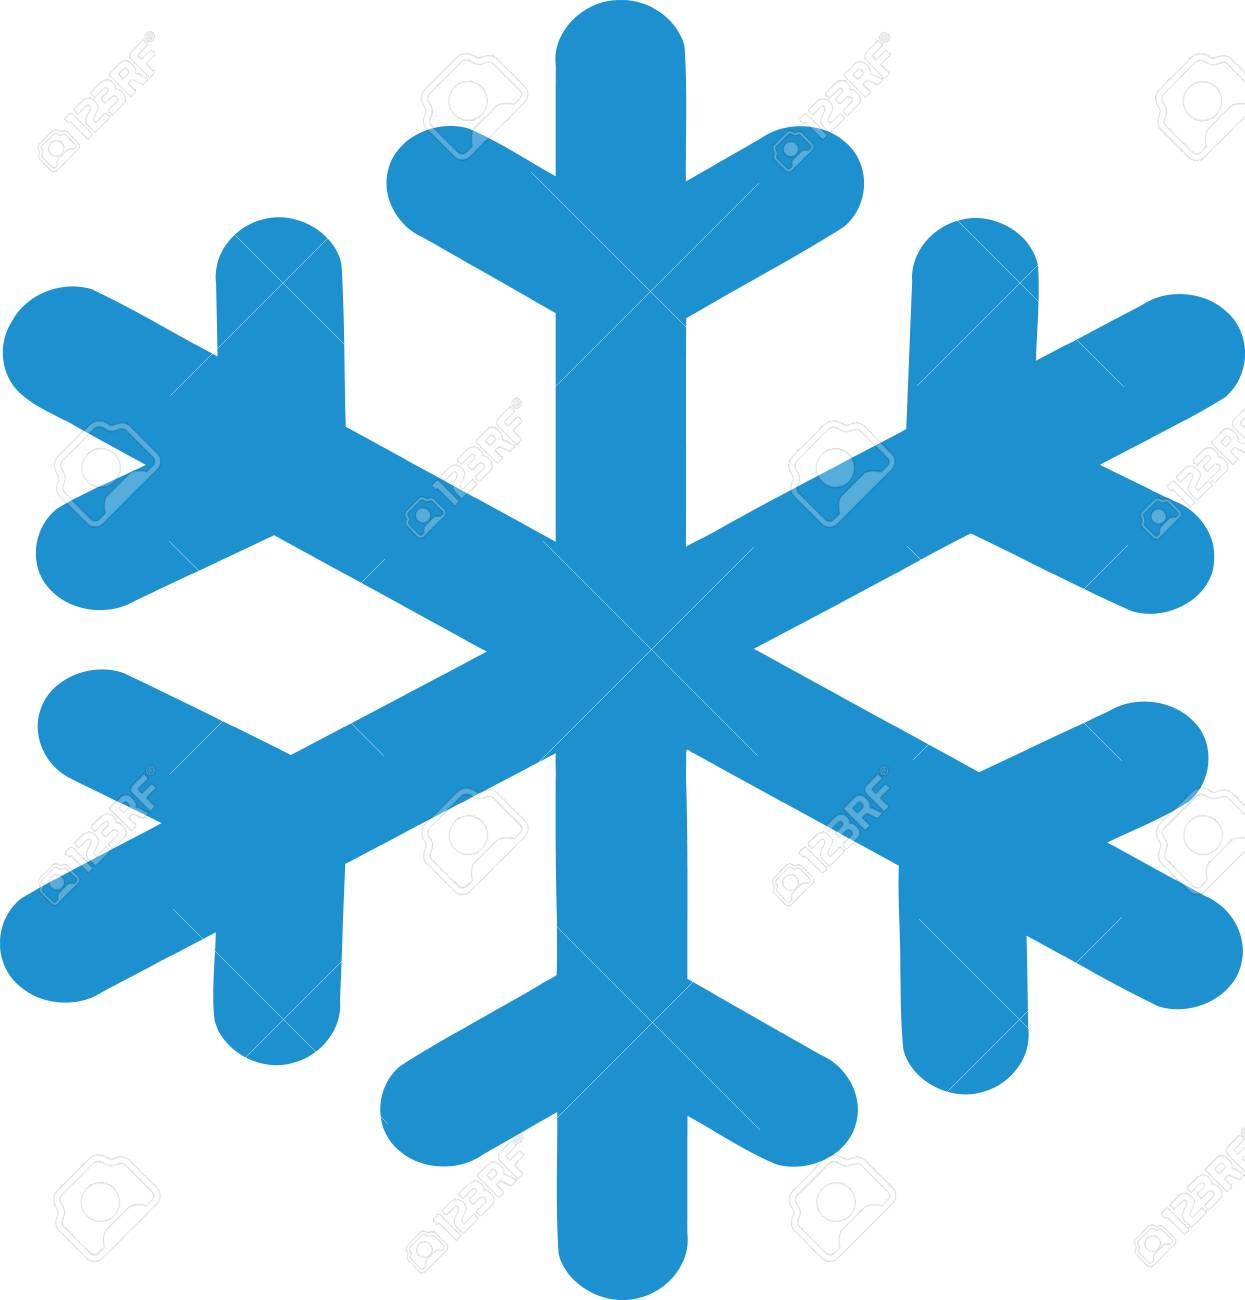 snowflake symbol royalty free cliparts vectors and stock rh 123rf com vector snowflake transparent background vector snowflake patterns